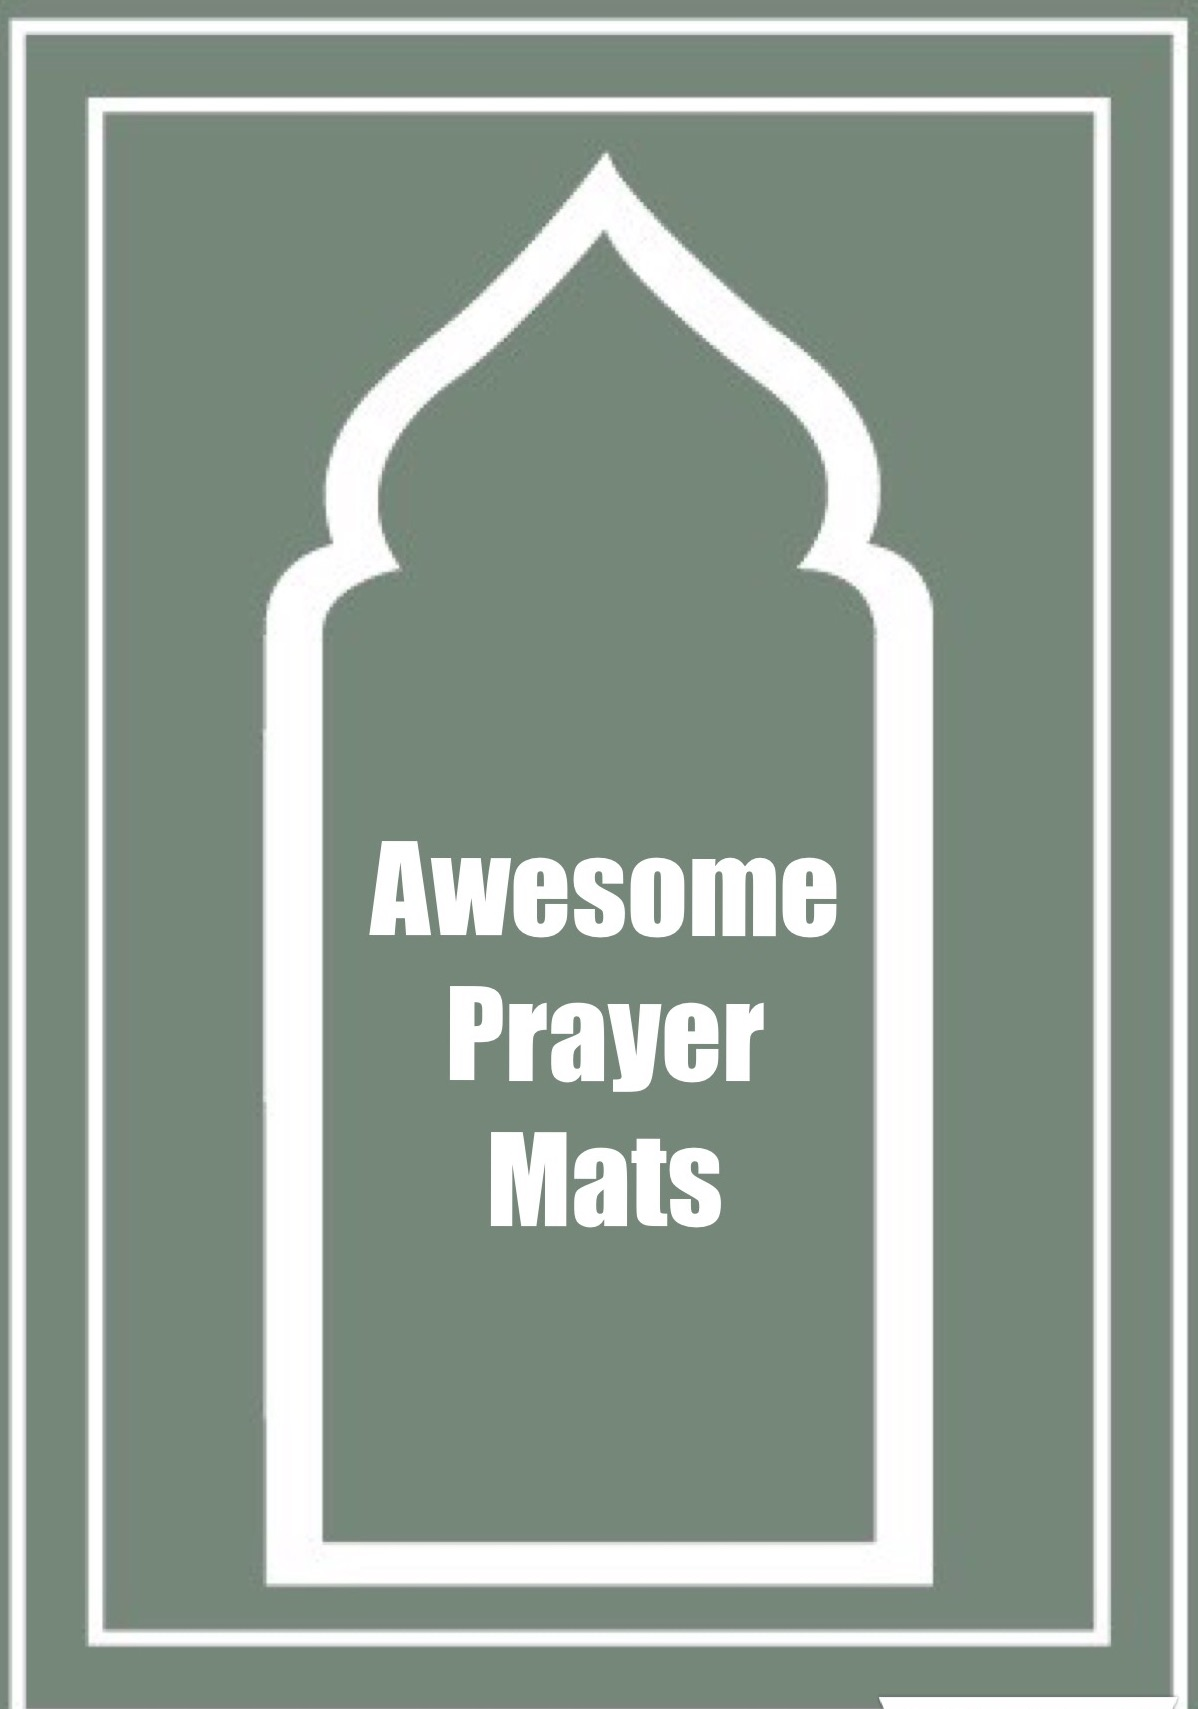 awesome prayer mats